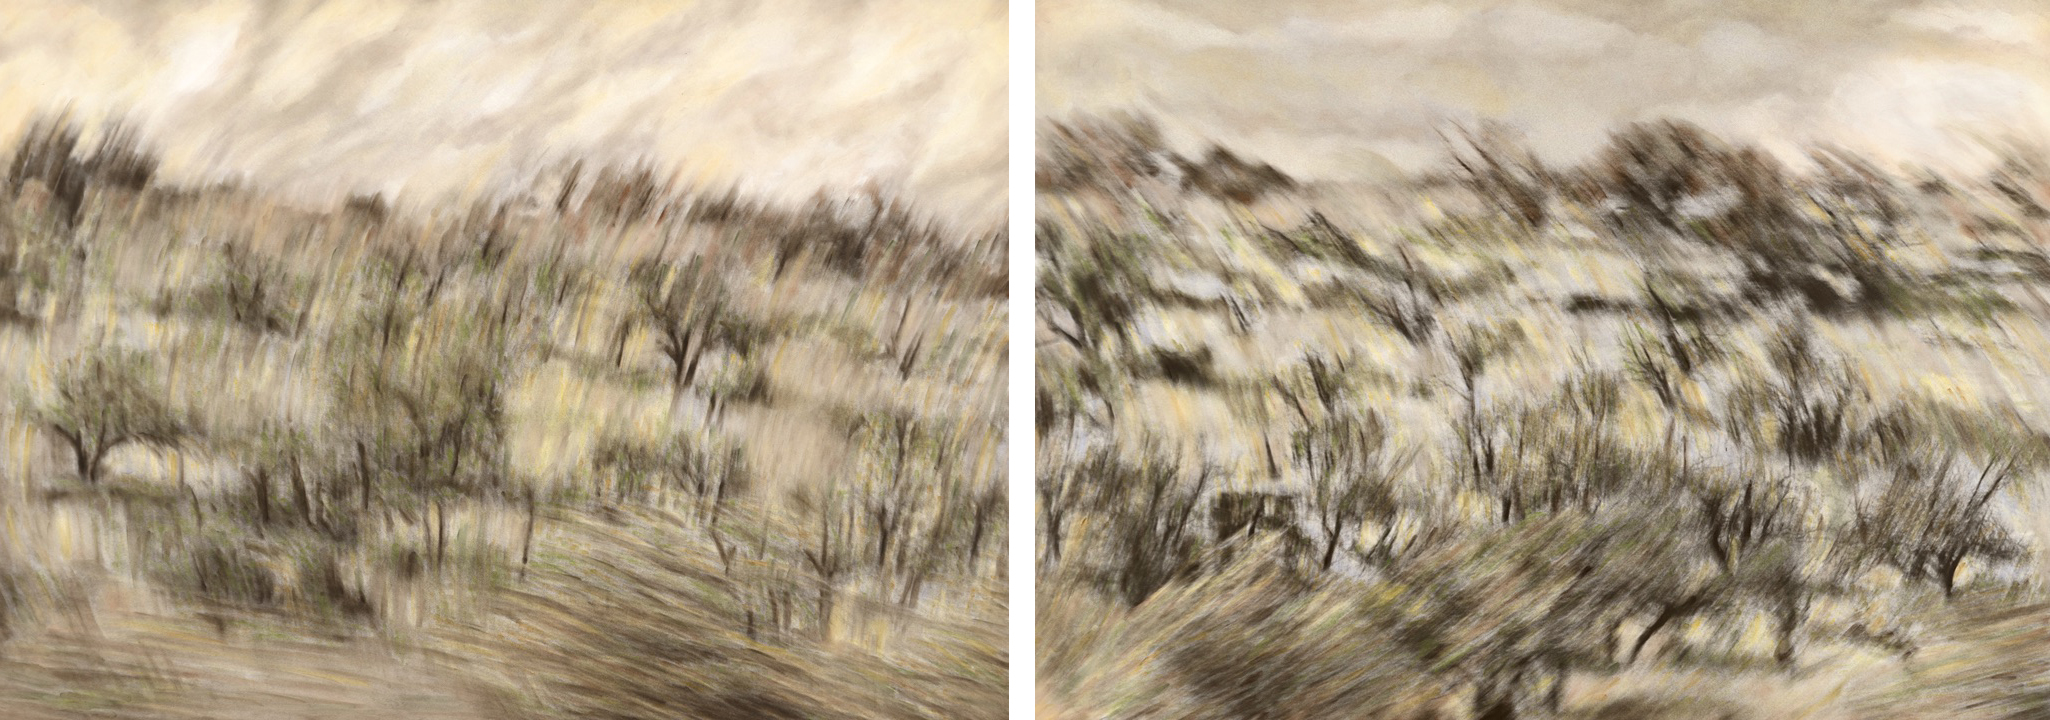 Phenomenon I and Phenomenon II (diptych)